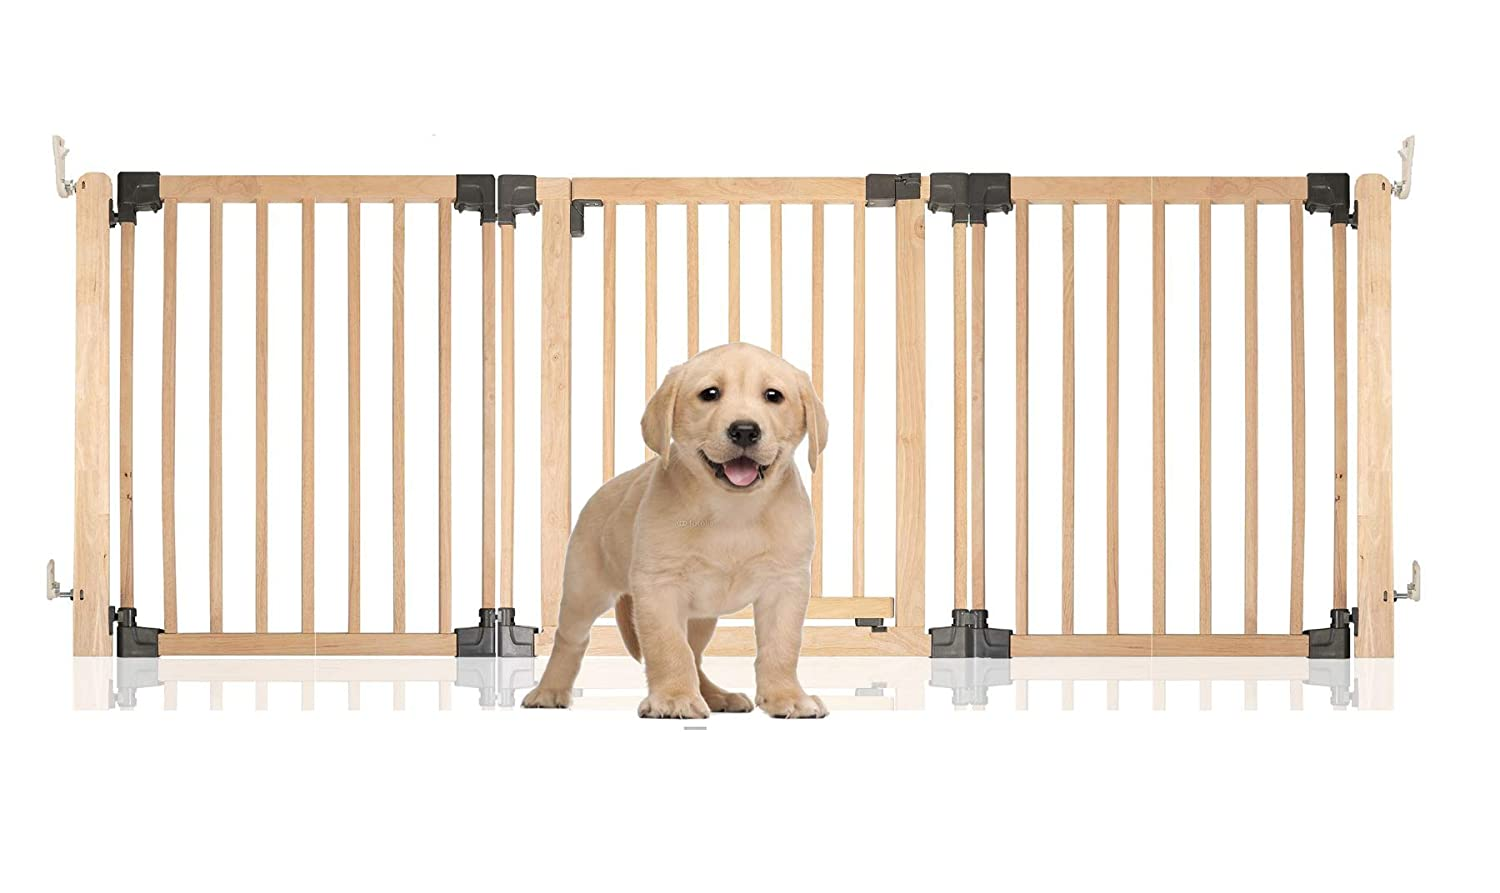 Up to 216.5CM Safetots Wooden Multi Panel Pet Barrier (Up to 216.5CM)